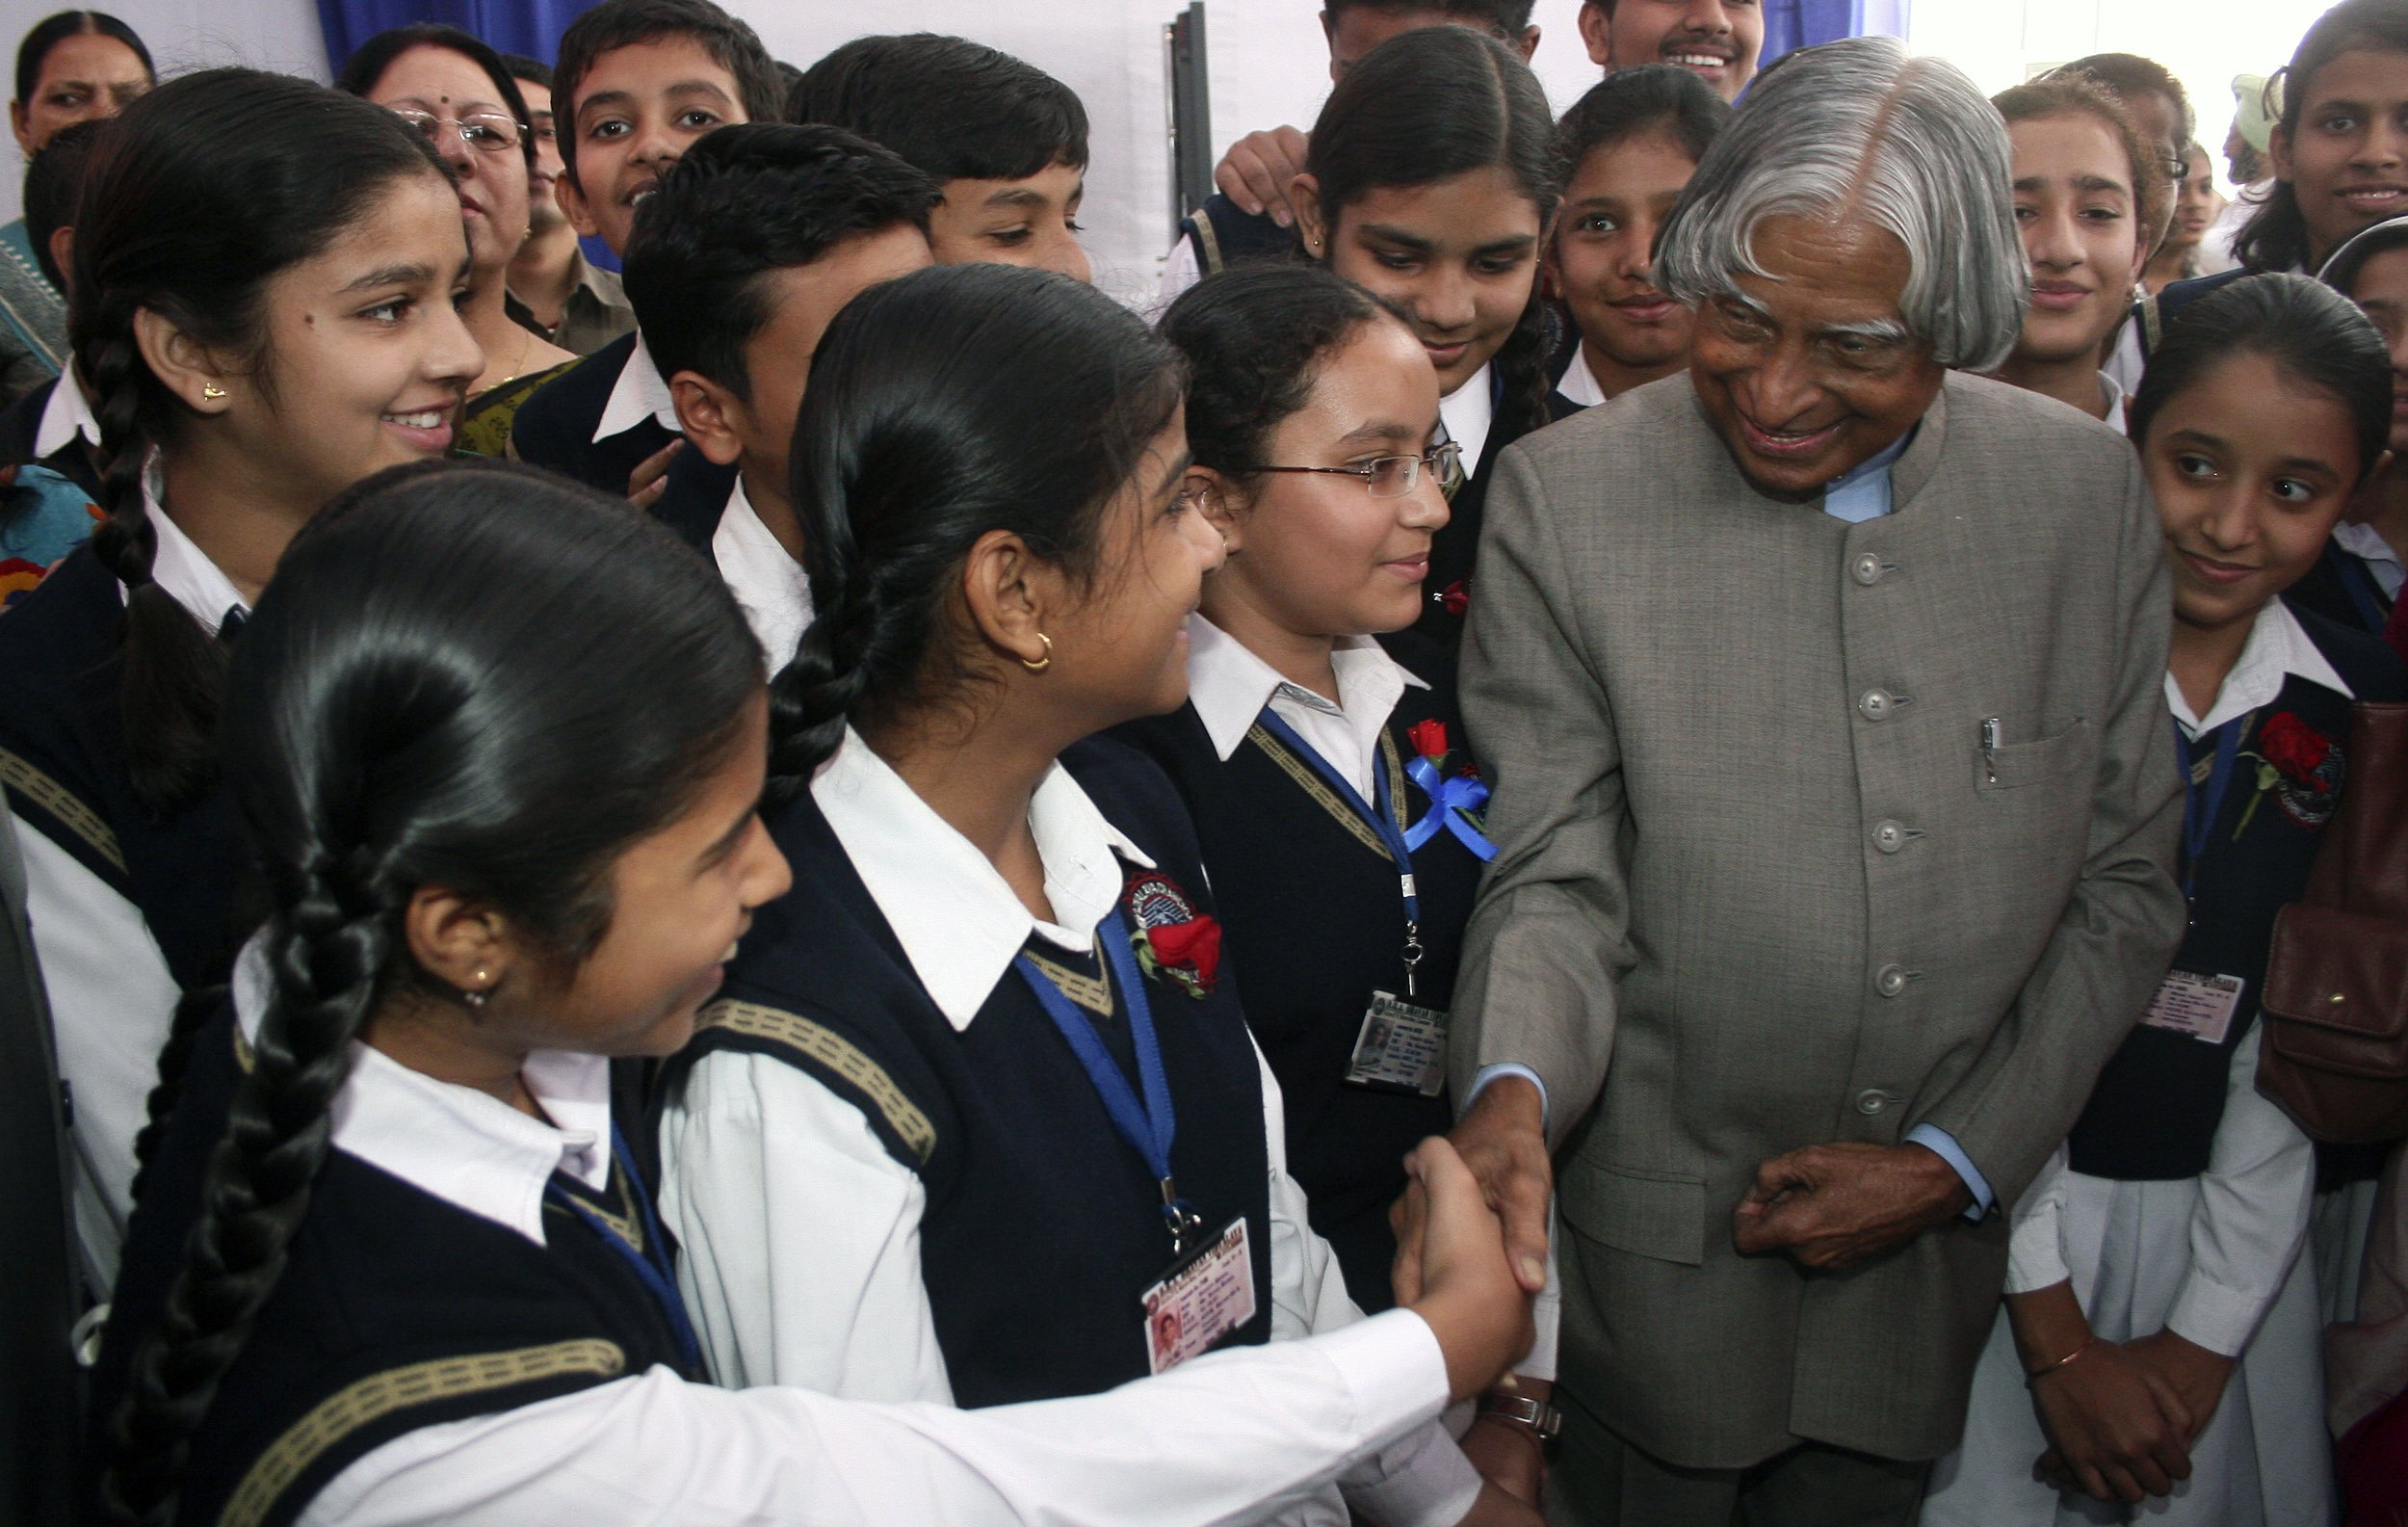 Abdul Kalam, known as the father of India's missile program, dies.